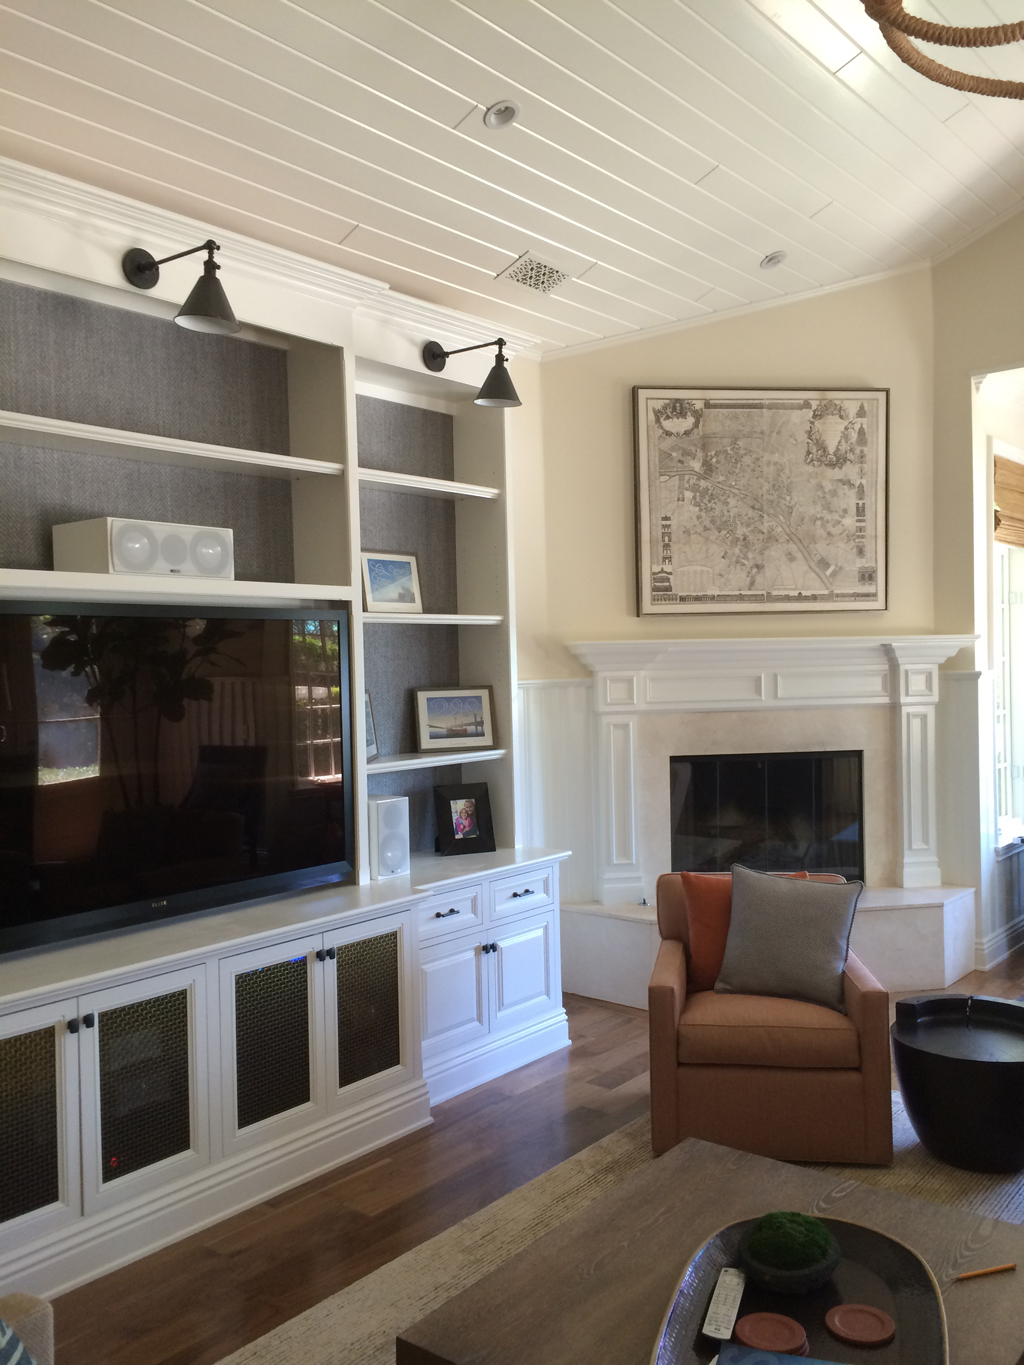 Custom television cabinet with light & storage on sides - Brentwood residence